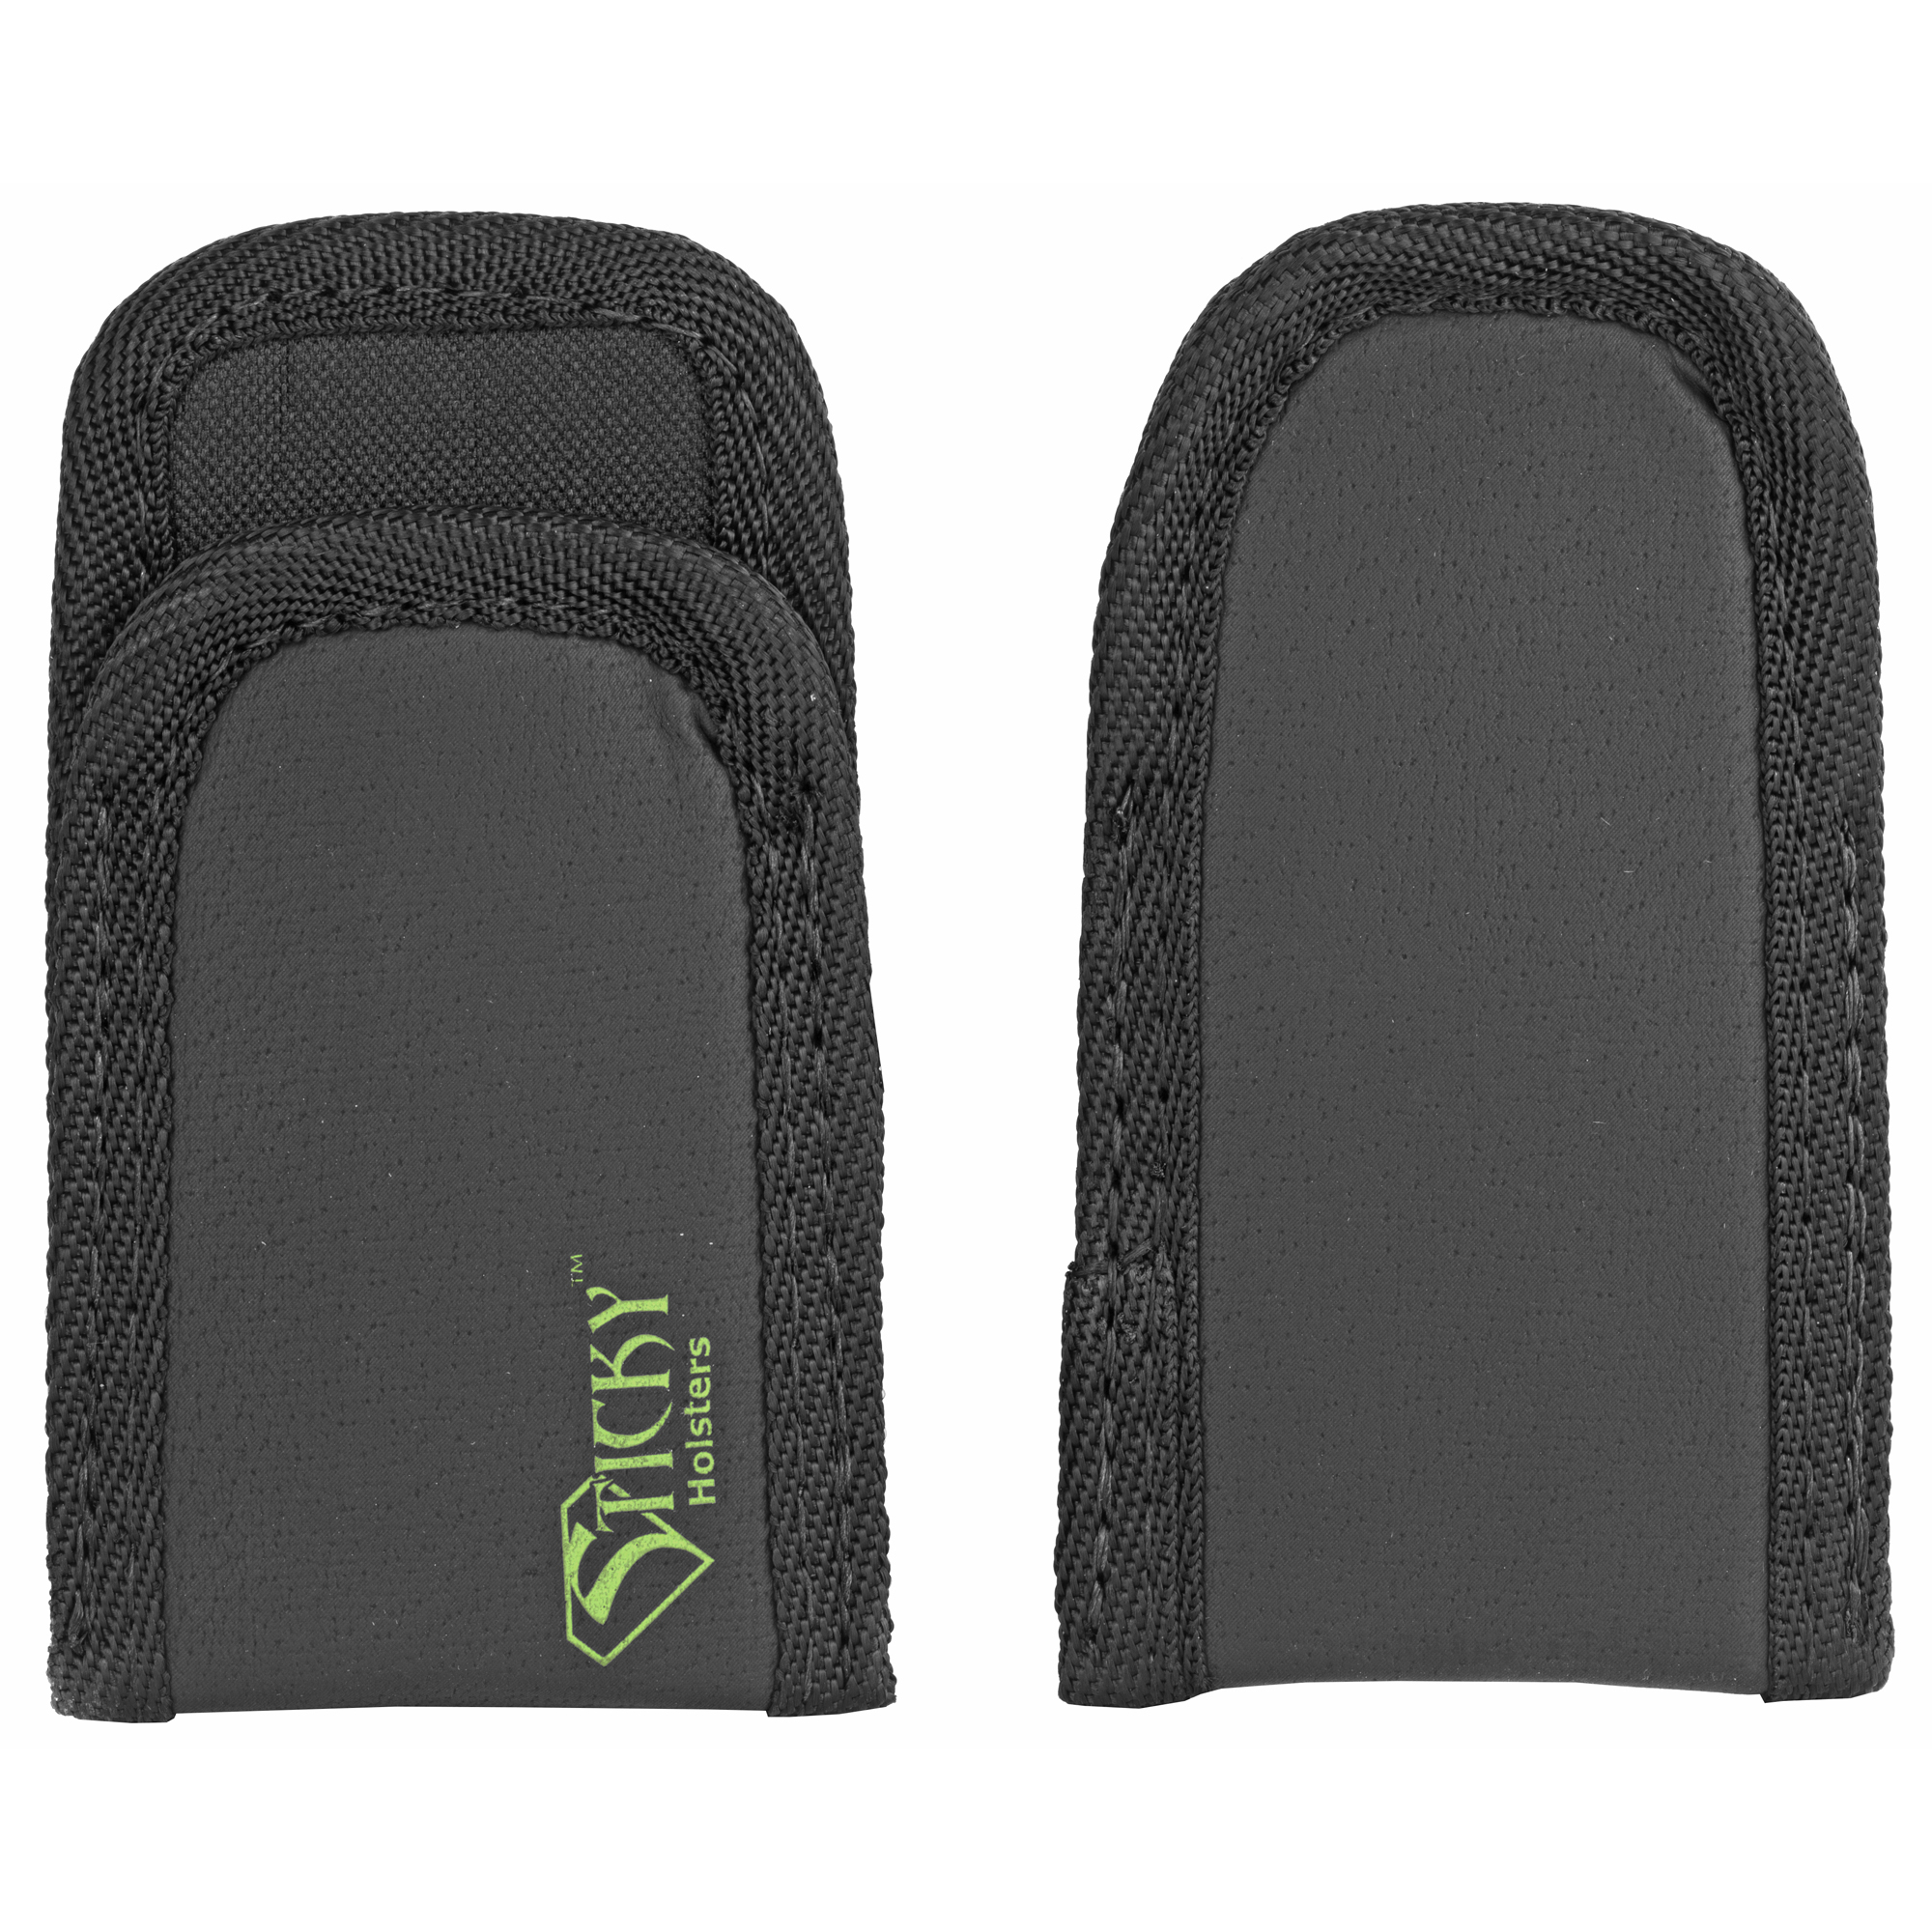 "The Mag Sleeve is a IWB or Pocket magazine or accessory holder. This can be used to carry a full sized or double stack magazine"" flashlight"" tourniquet"" etc. This is a two pack."